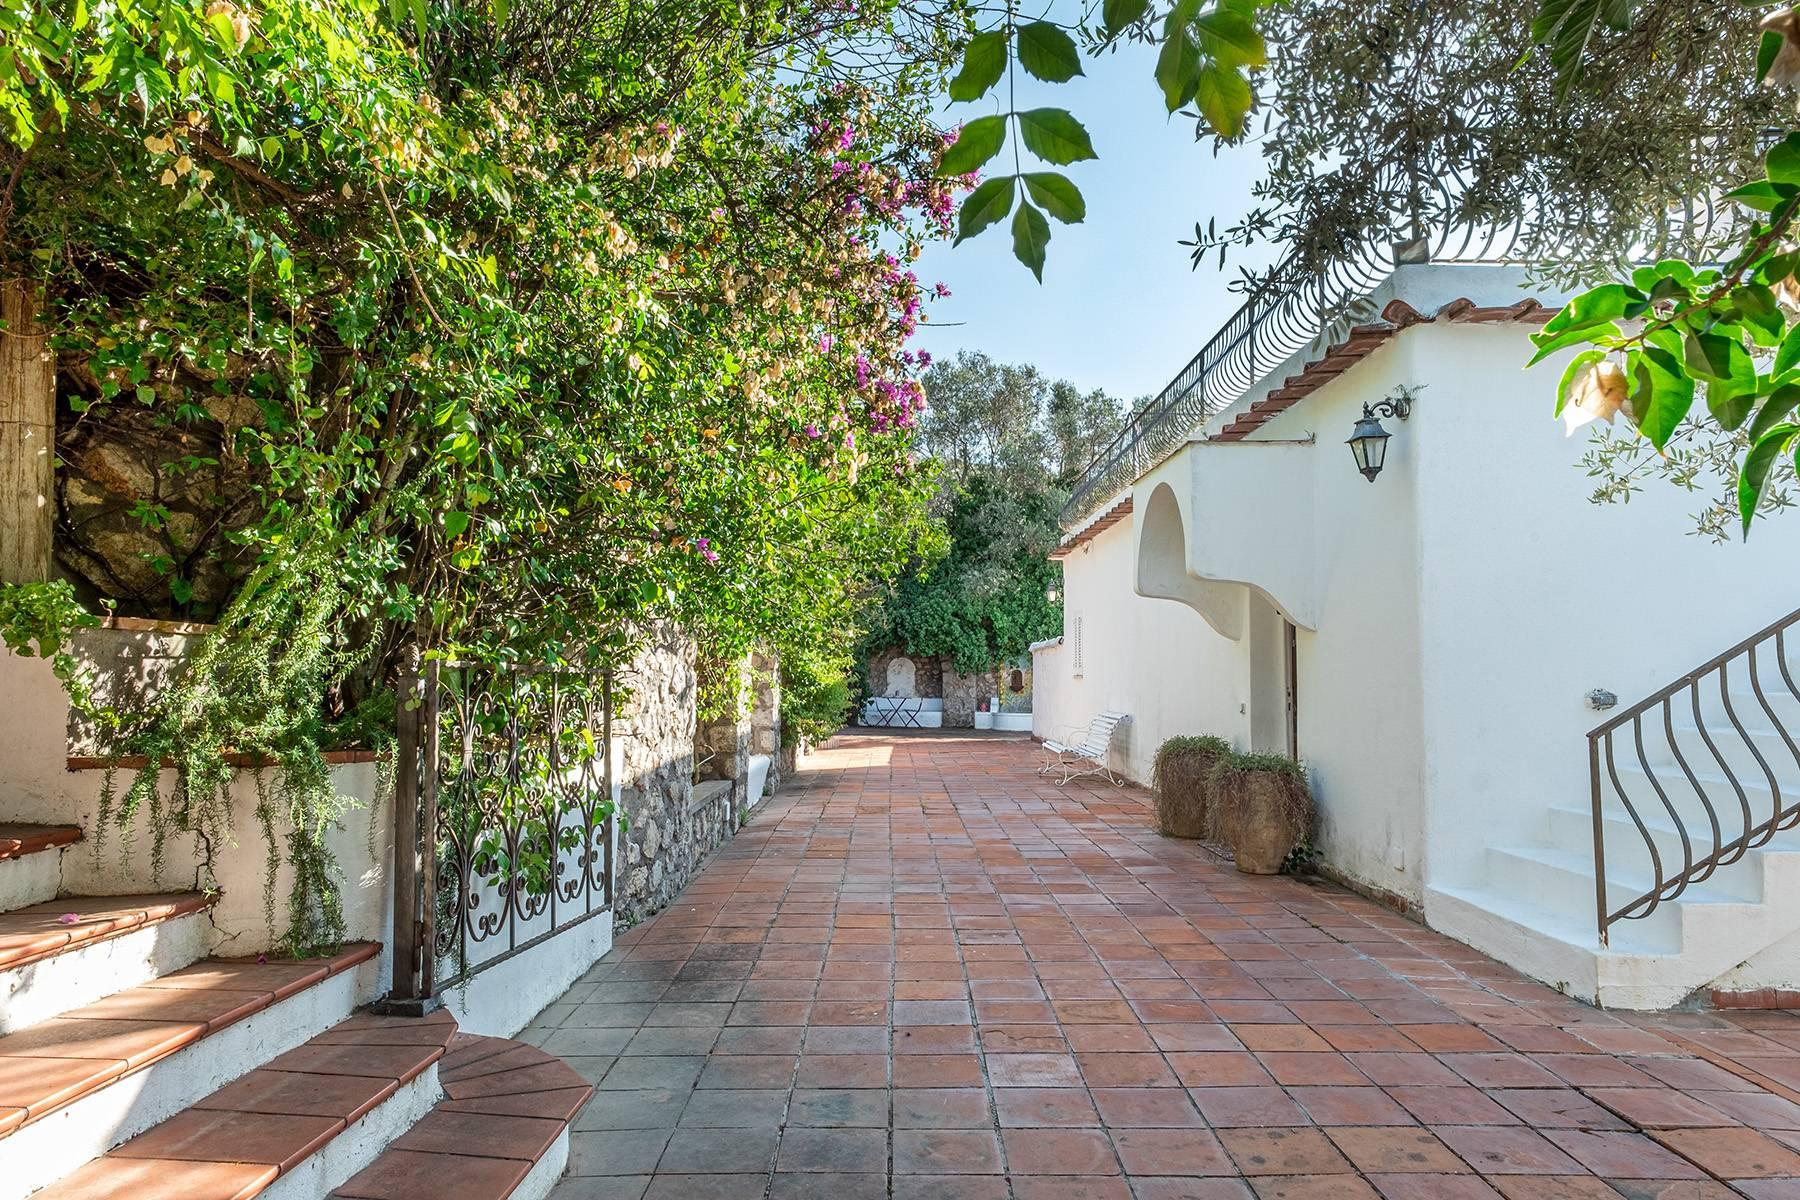 Charming villa with olive grove and swimming pool overlooking the sea - 19